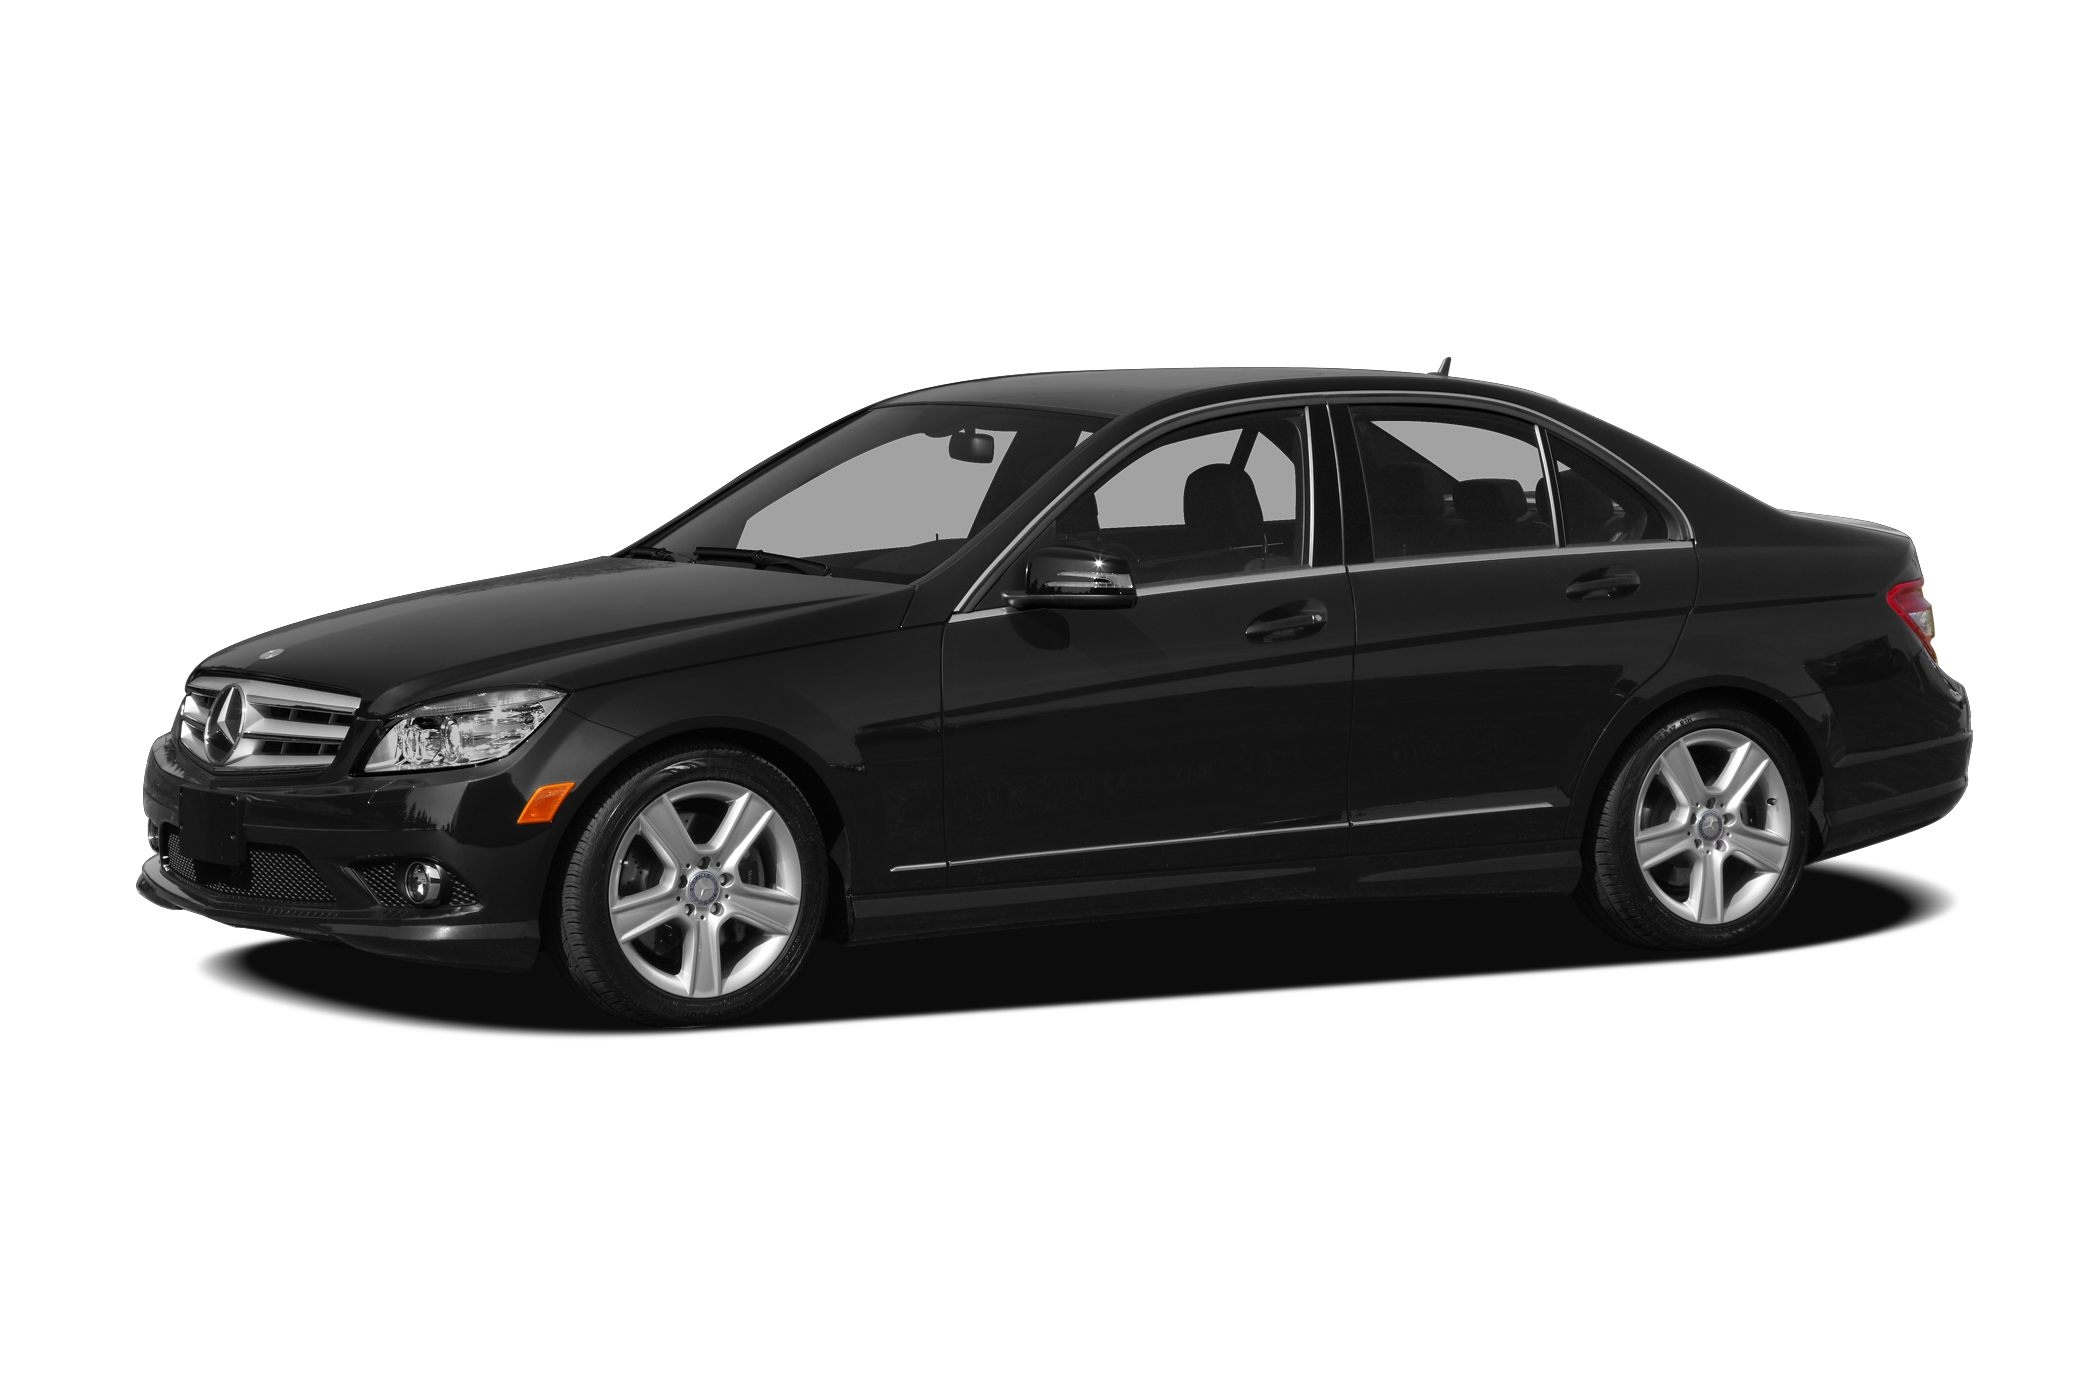 2010 Mercedes-Benz C-Class C300 Sedan for sale in Brunswick for $14,995 with 105,576 miles.